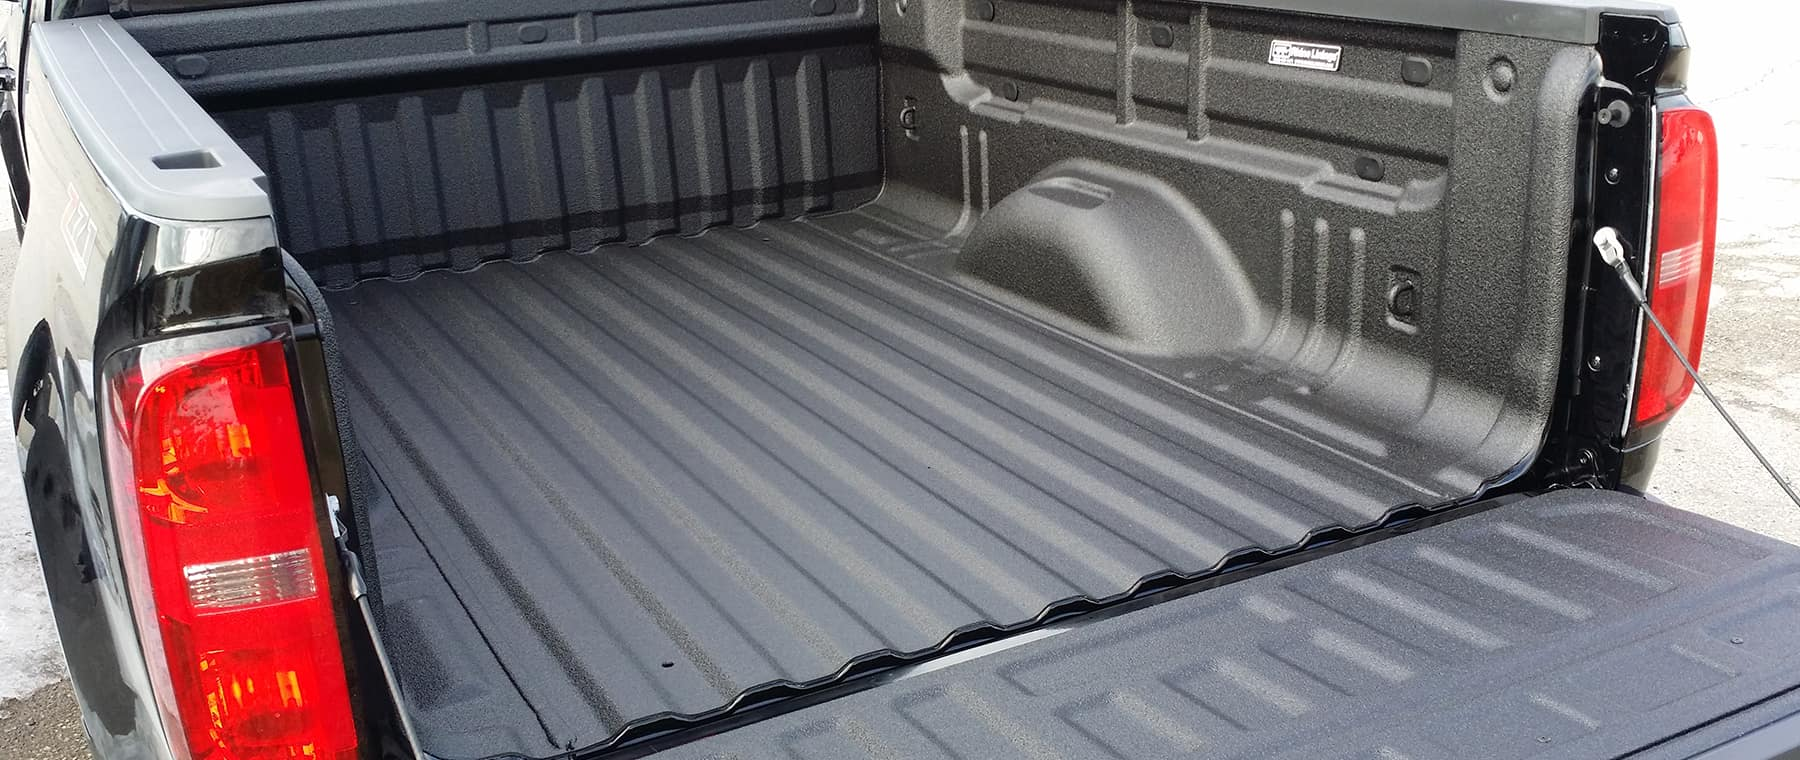 Rhino linings truck bed